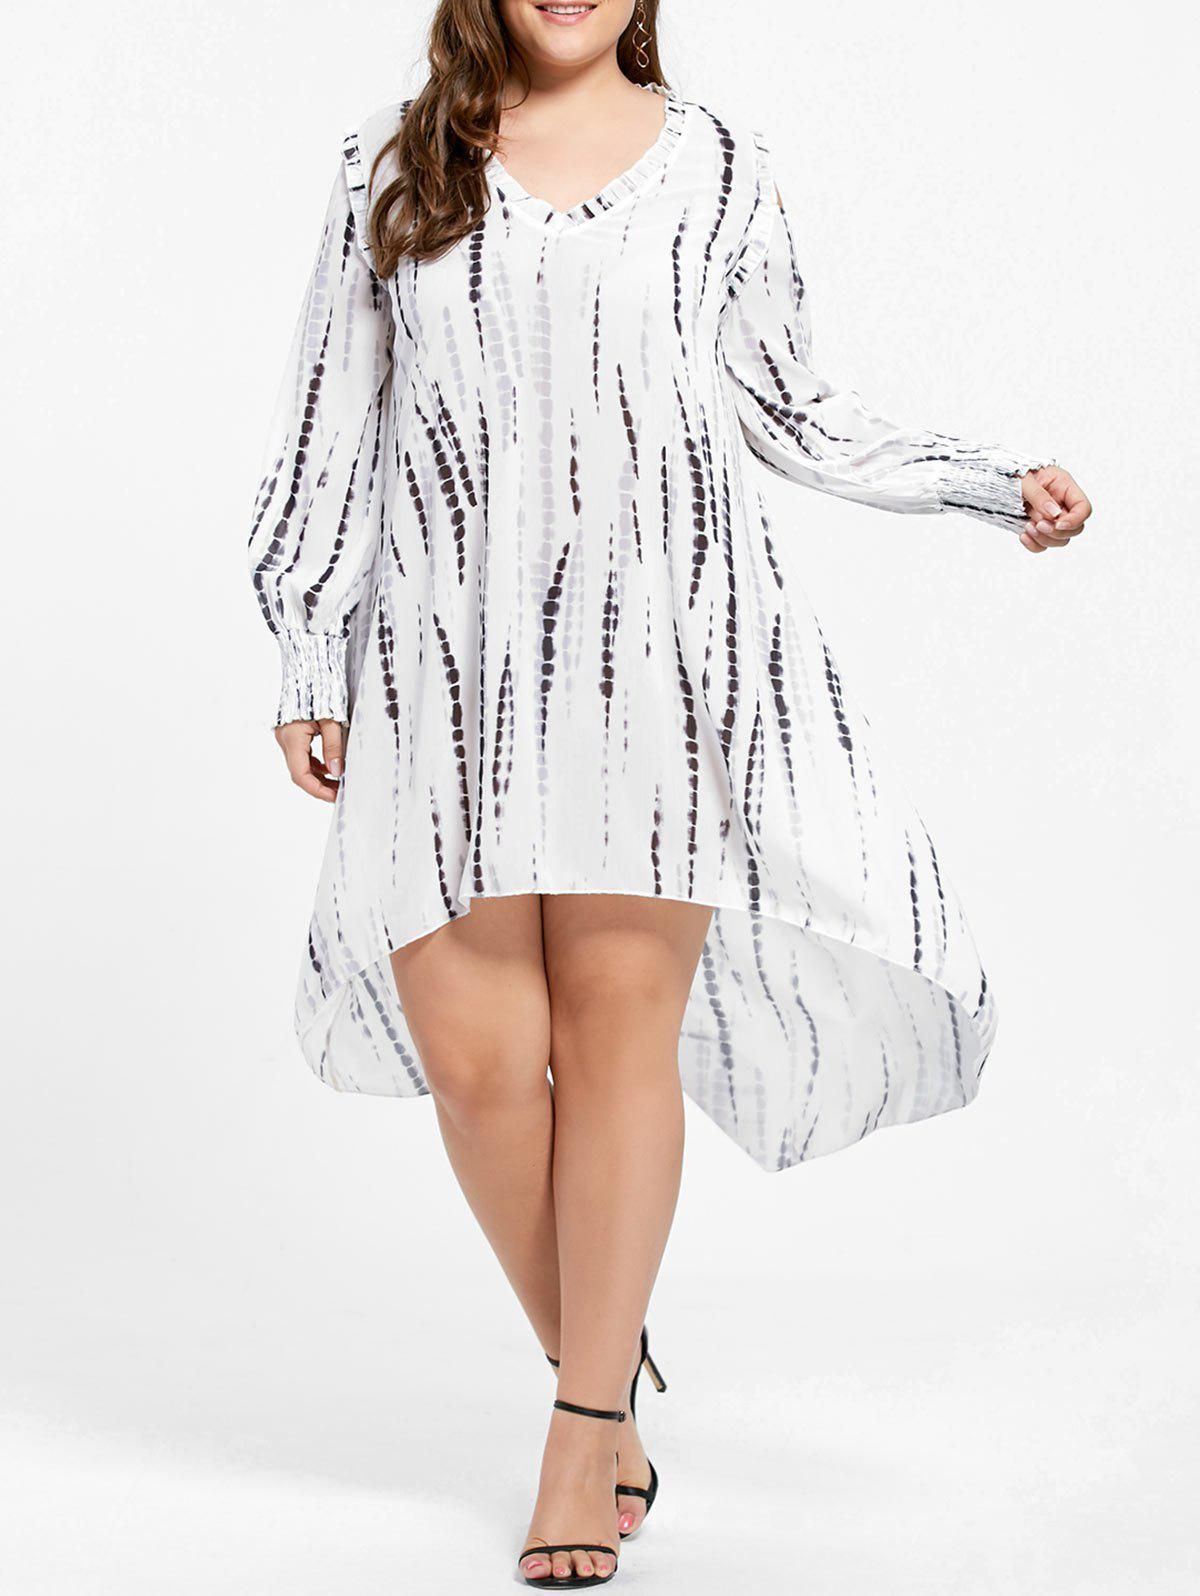 Ruffle V-neck Plus Size High Low DressWOMEN<br><br>Size: 3XL; Color: BLACK WHITE; Style: Cute; Material: Polyester; Silhouette: Straight; Dresses Length: Mid-Calf; Neckline: V-Neck; Sleeve Length: Long Sleeves; Pattern Type: Print; With Belt: No; Season: Fall,Spring; Weight: 0.3800kg; Package Contents: 1 x Dress;